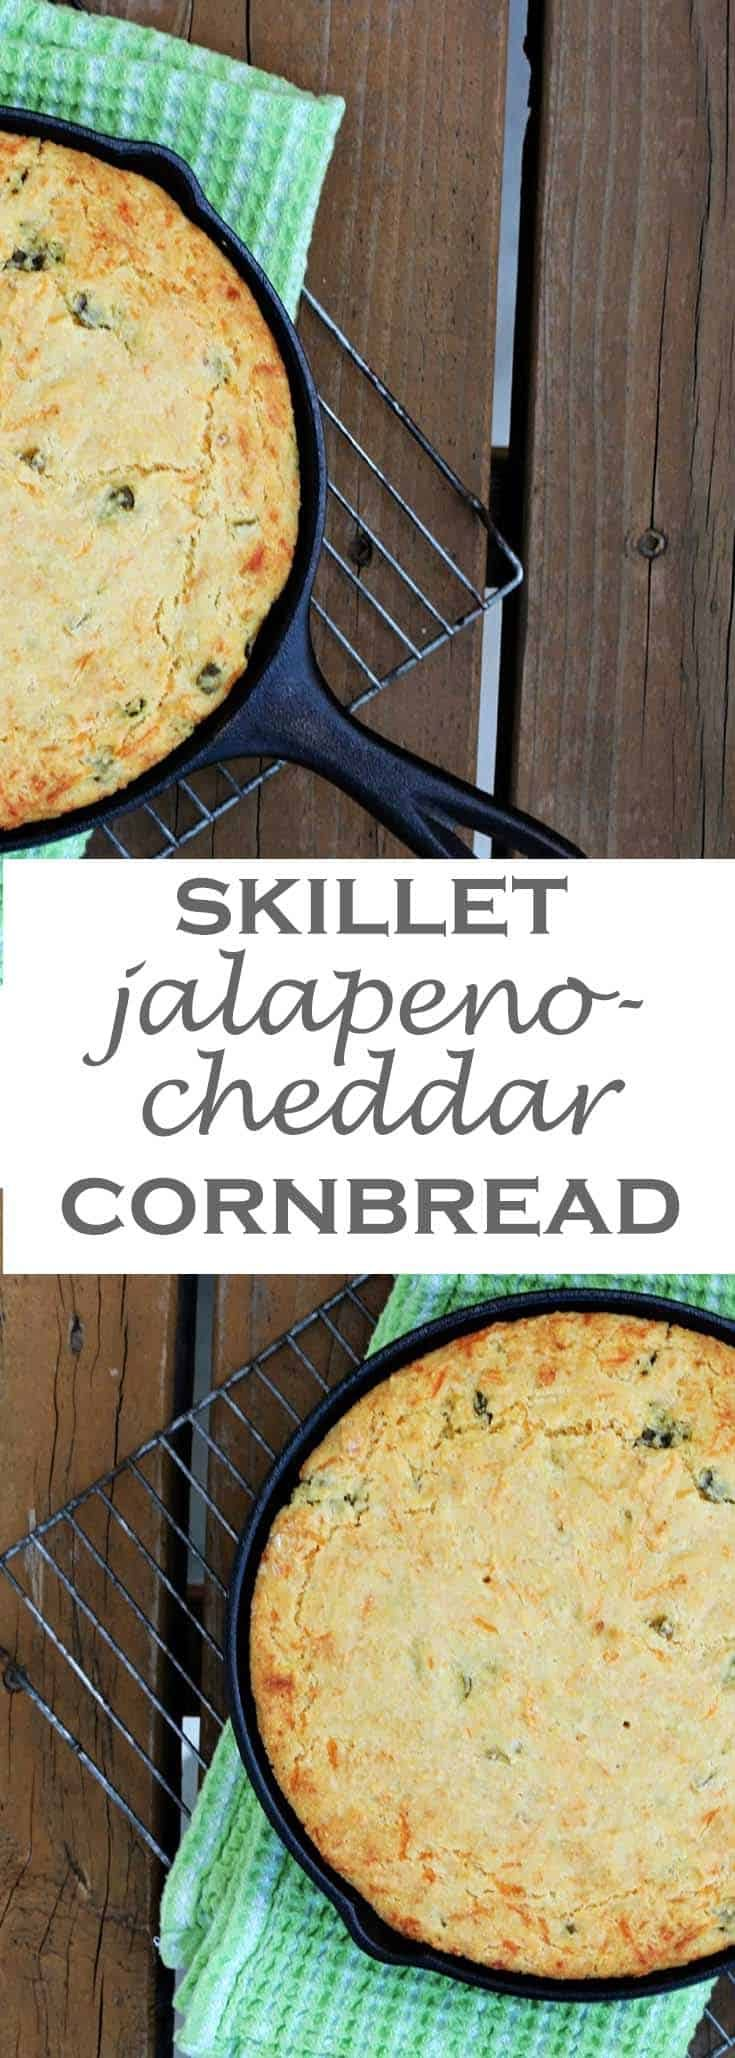 This skillet jalapeno cheddar cornbread gives a spicy, yet balanced, bite to go along with a chili or soup. Or take it along as a side dish to your next pot luck gathering. #abakershouse #cornbread #ironskillet